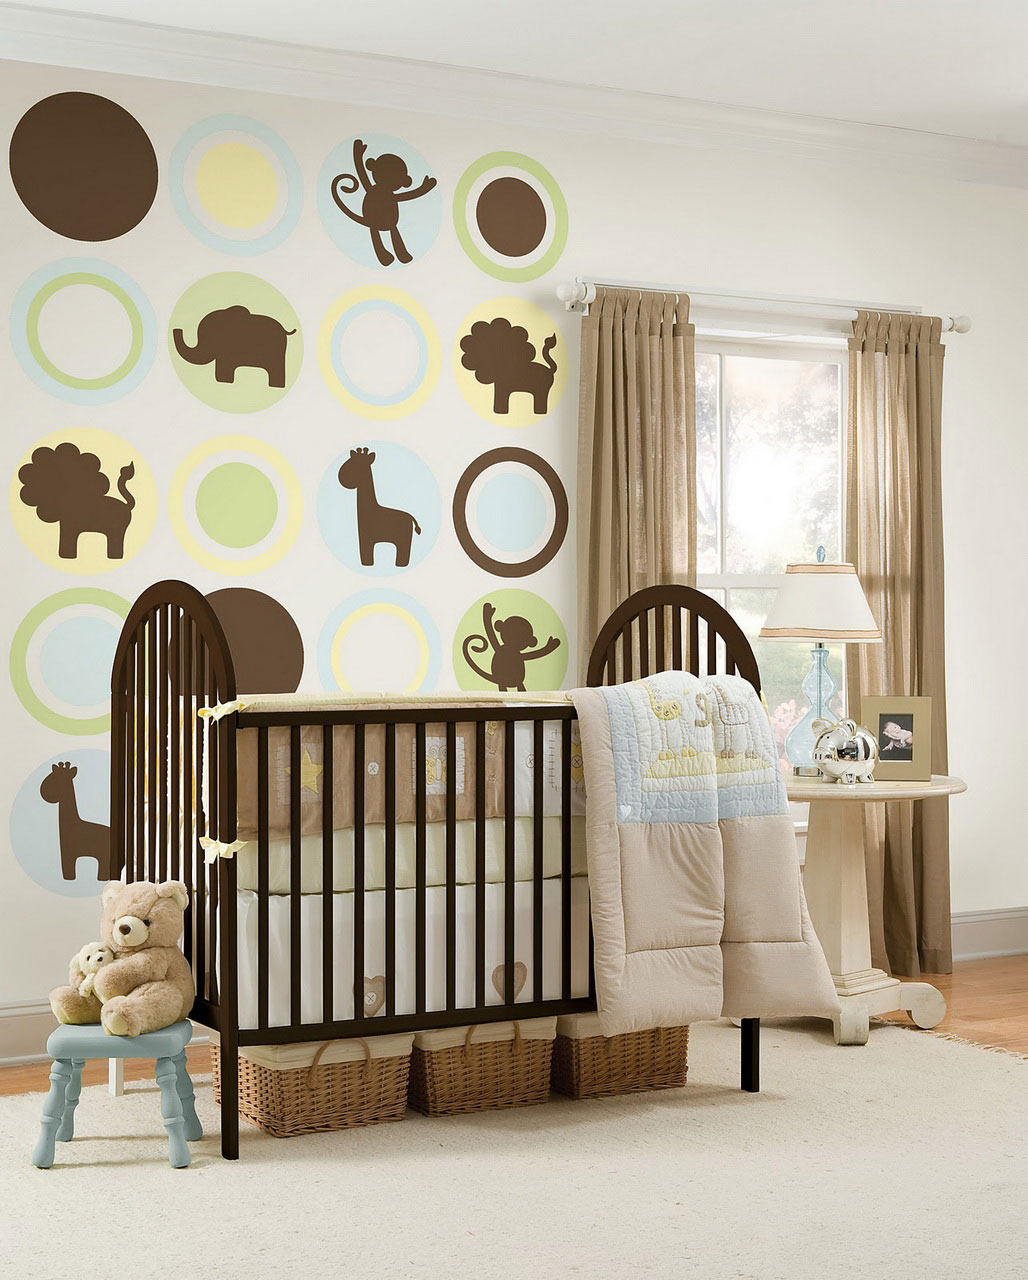 Baby Room Ideas: Welcome To Our Family : Funny Baby Room Ideas Rattan Baskets Teddy Bear Doll